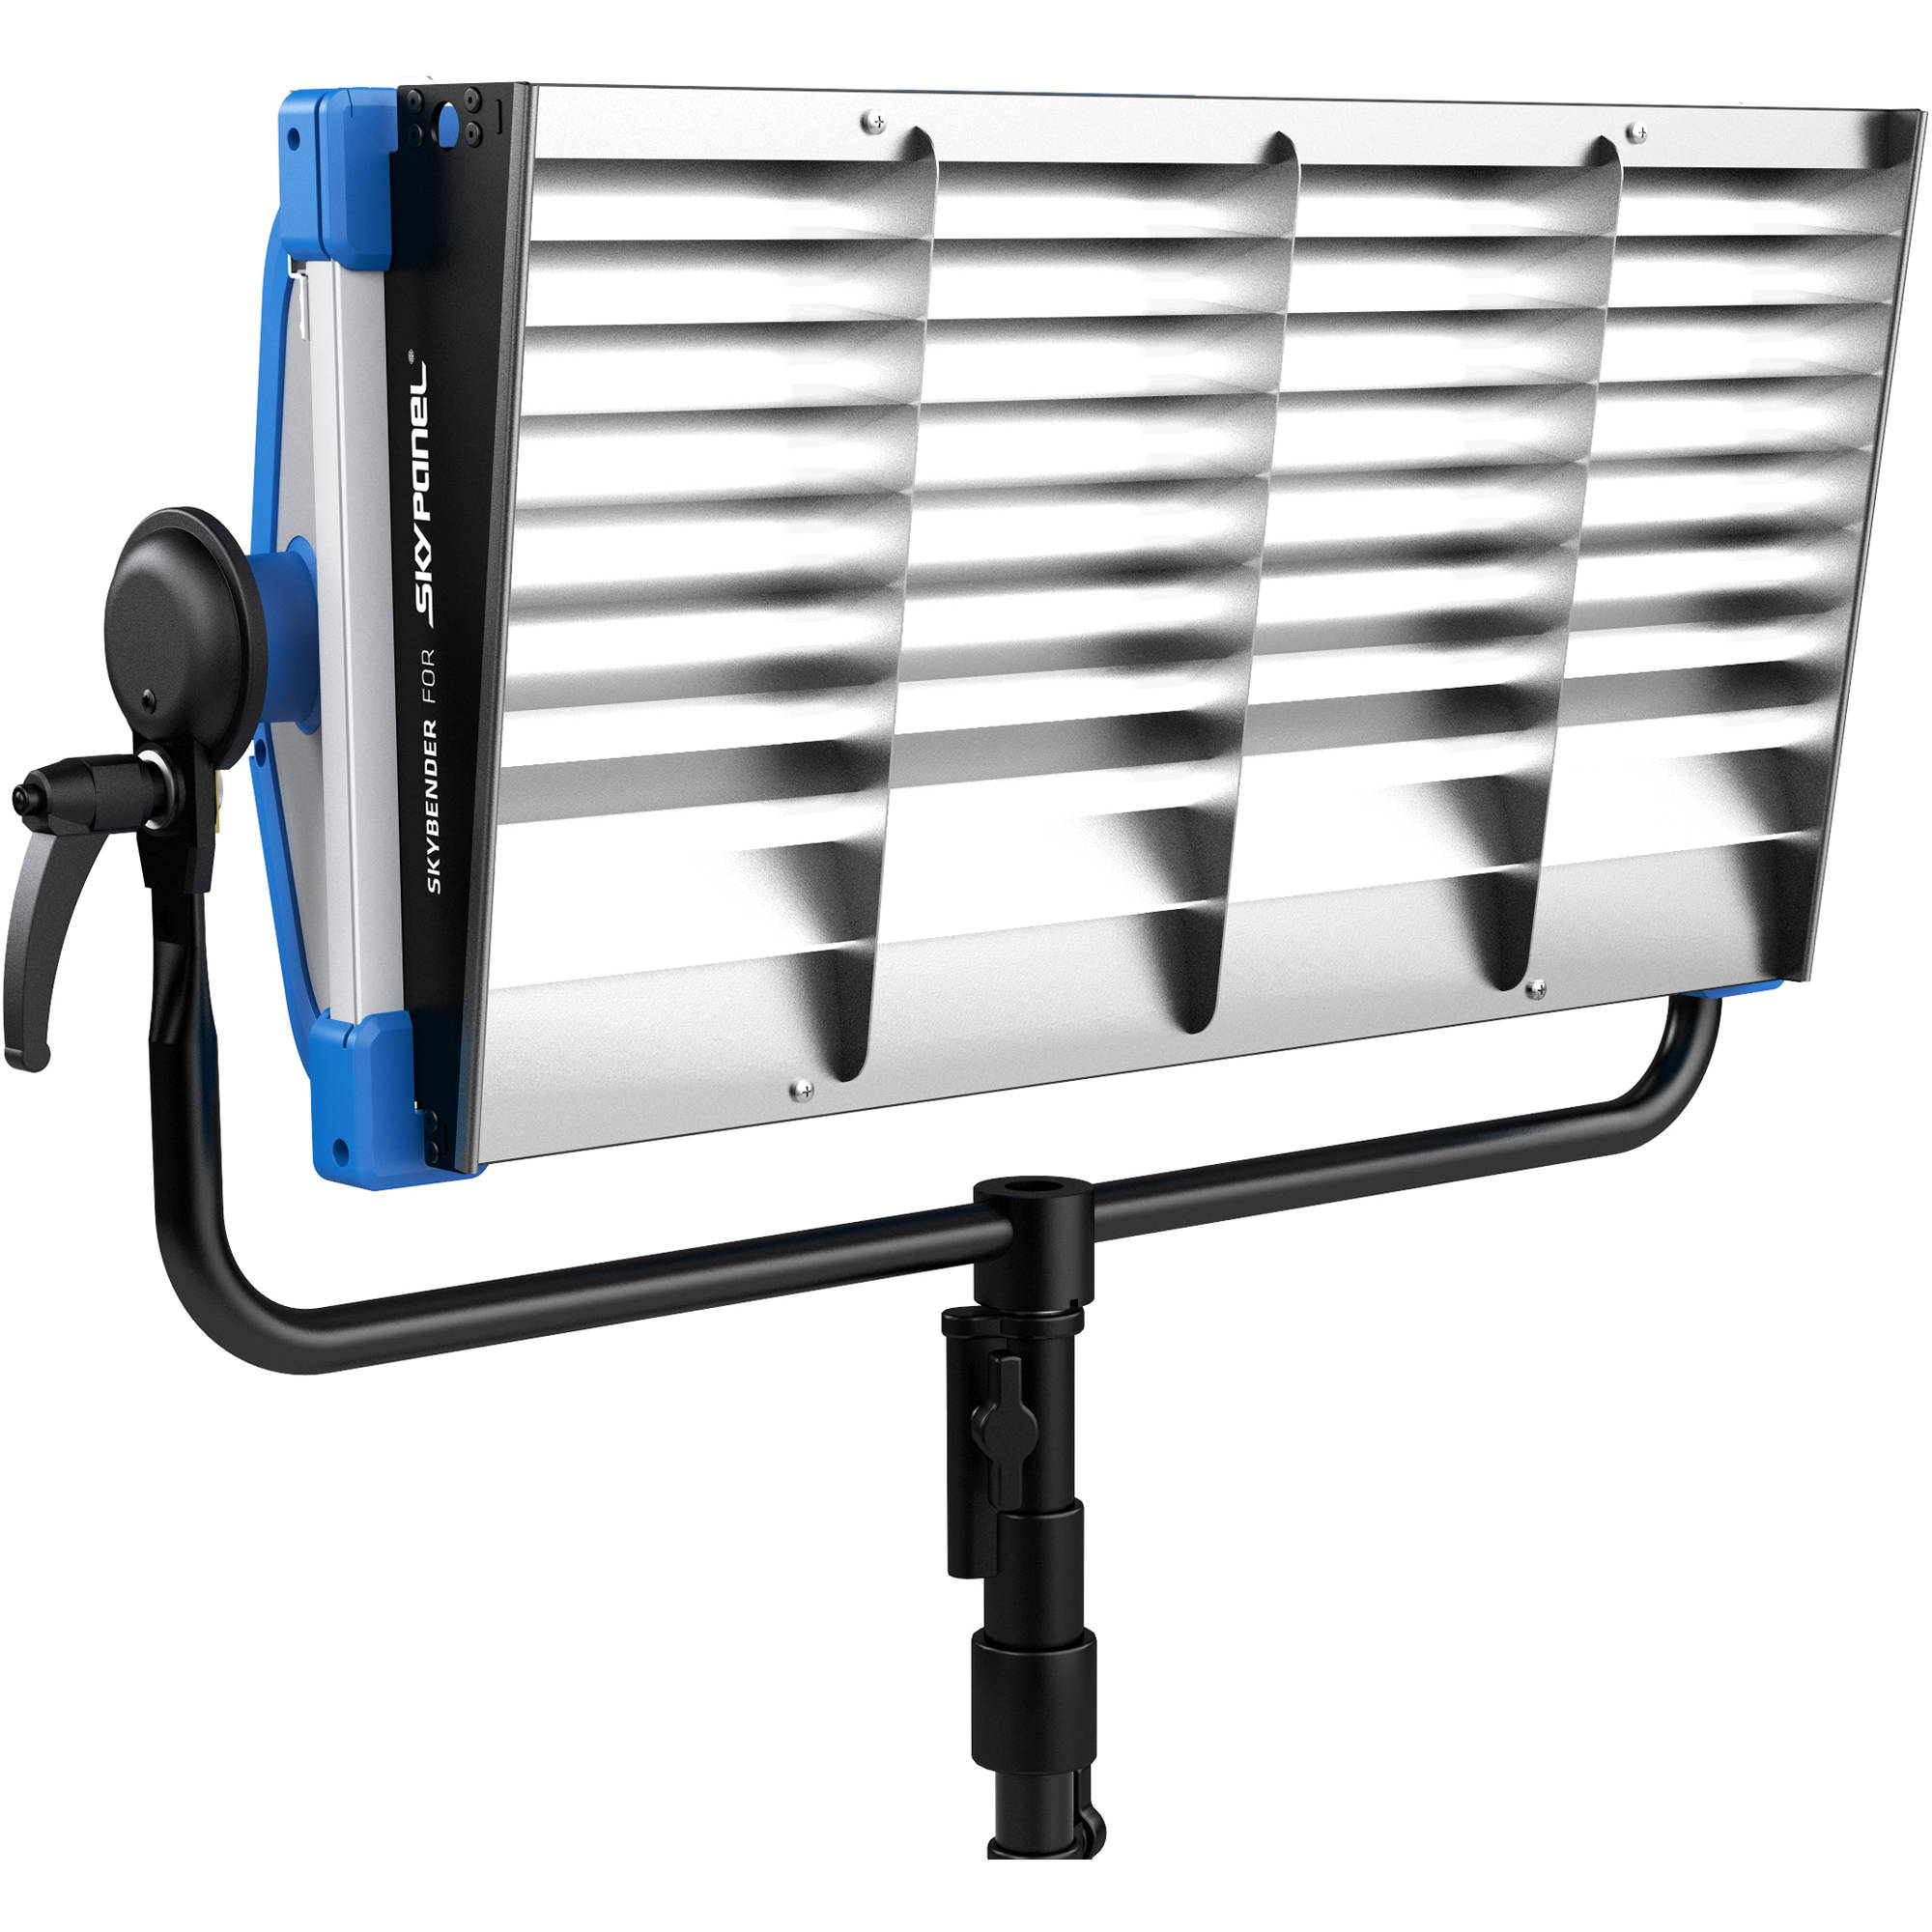 reputable site f4be7 95722 ARRI Skybender for S60 SkyPanel